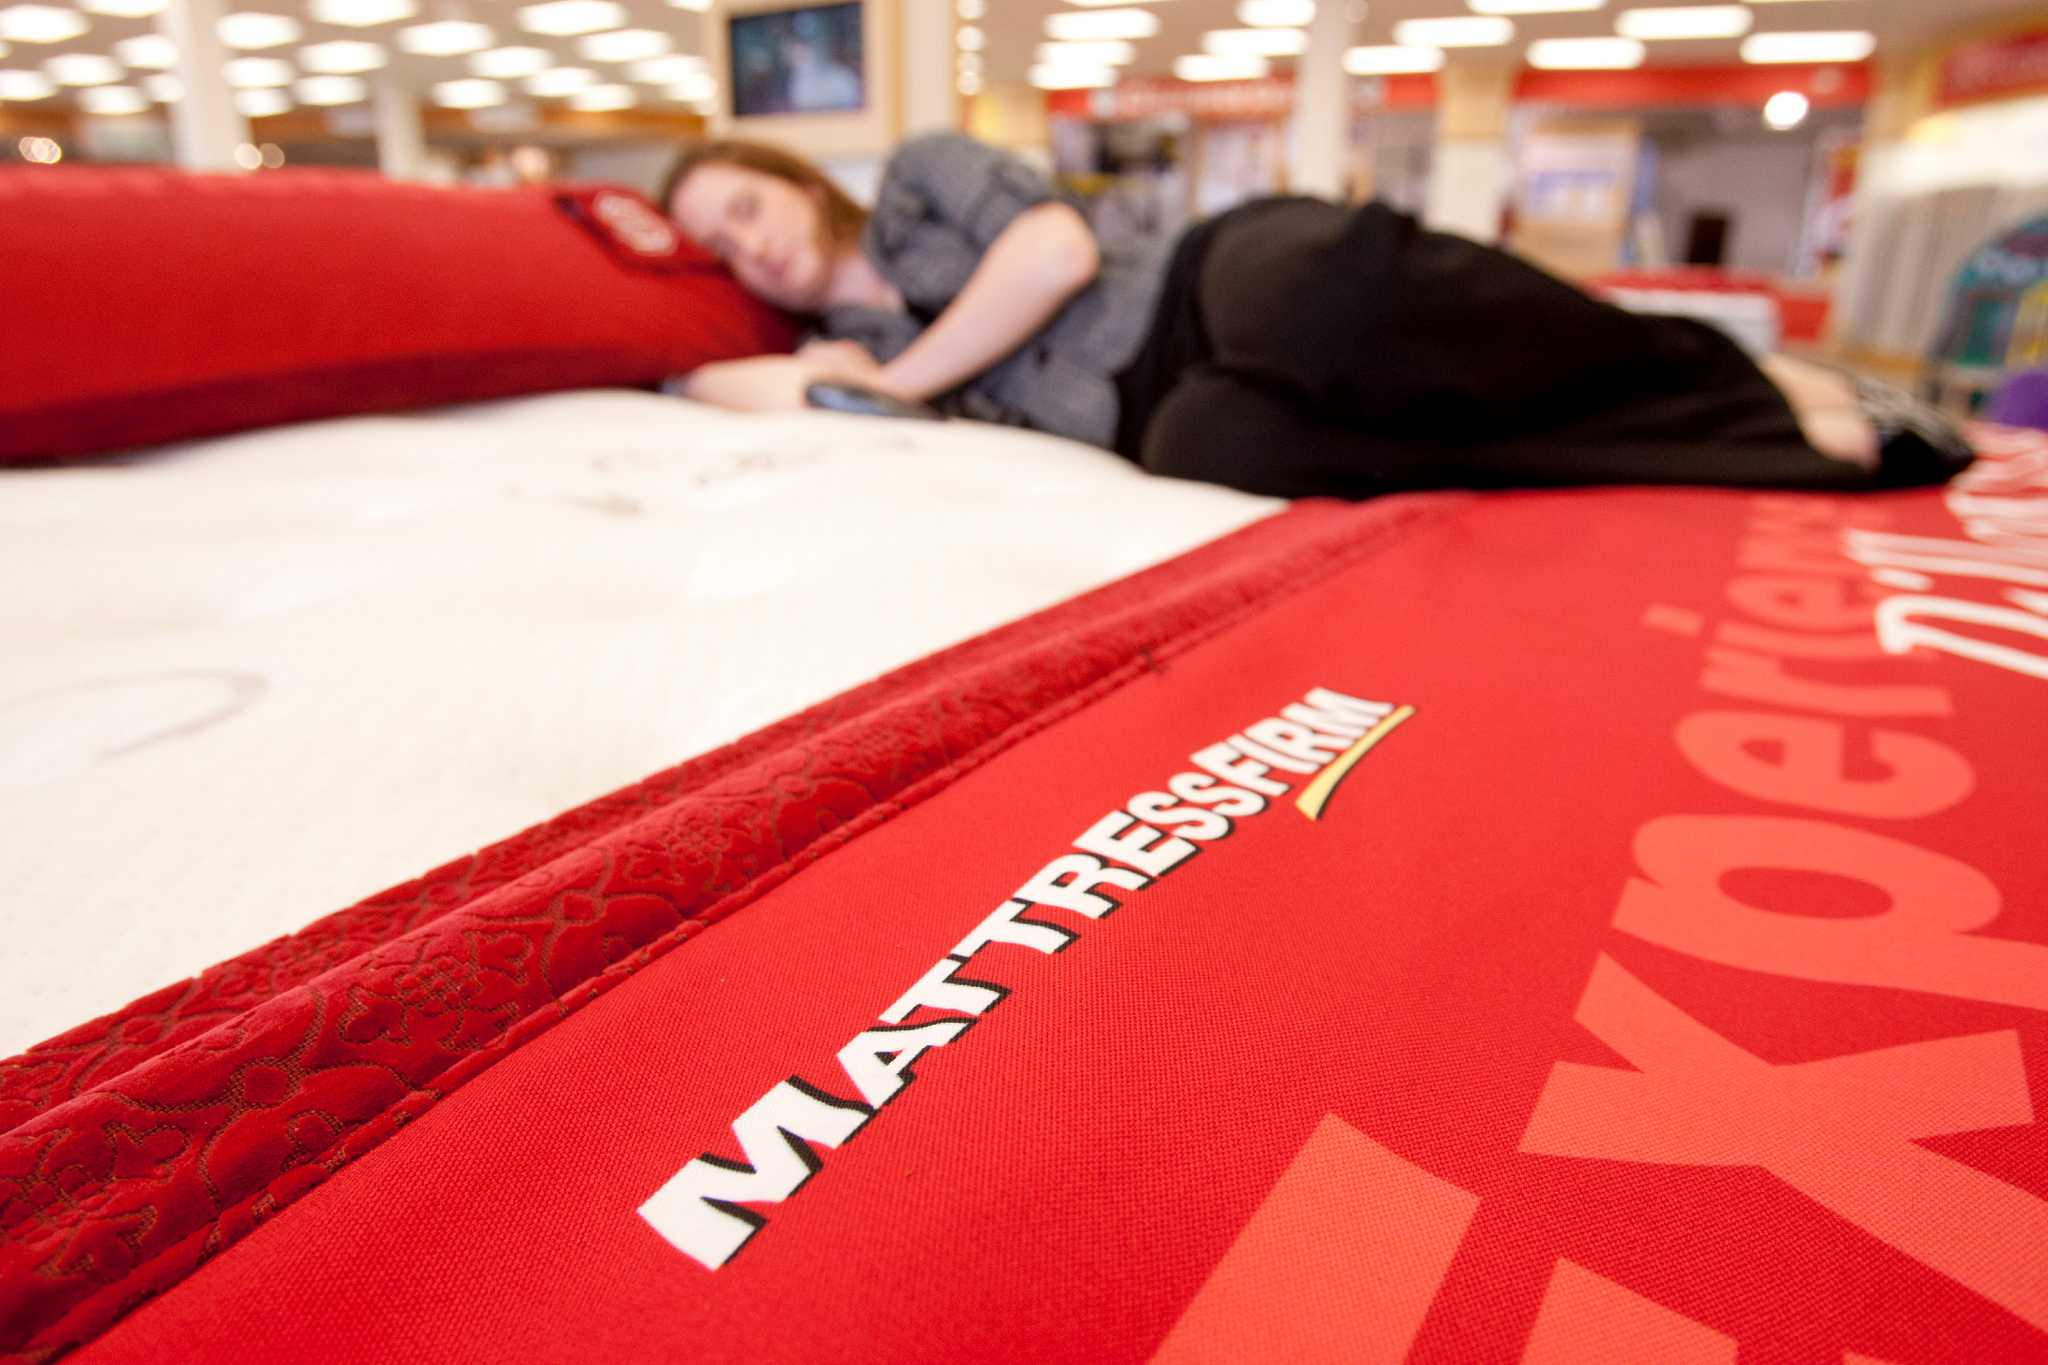 mattress firm sues bed in a box competitor for false advertising